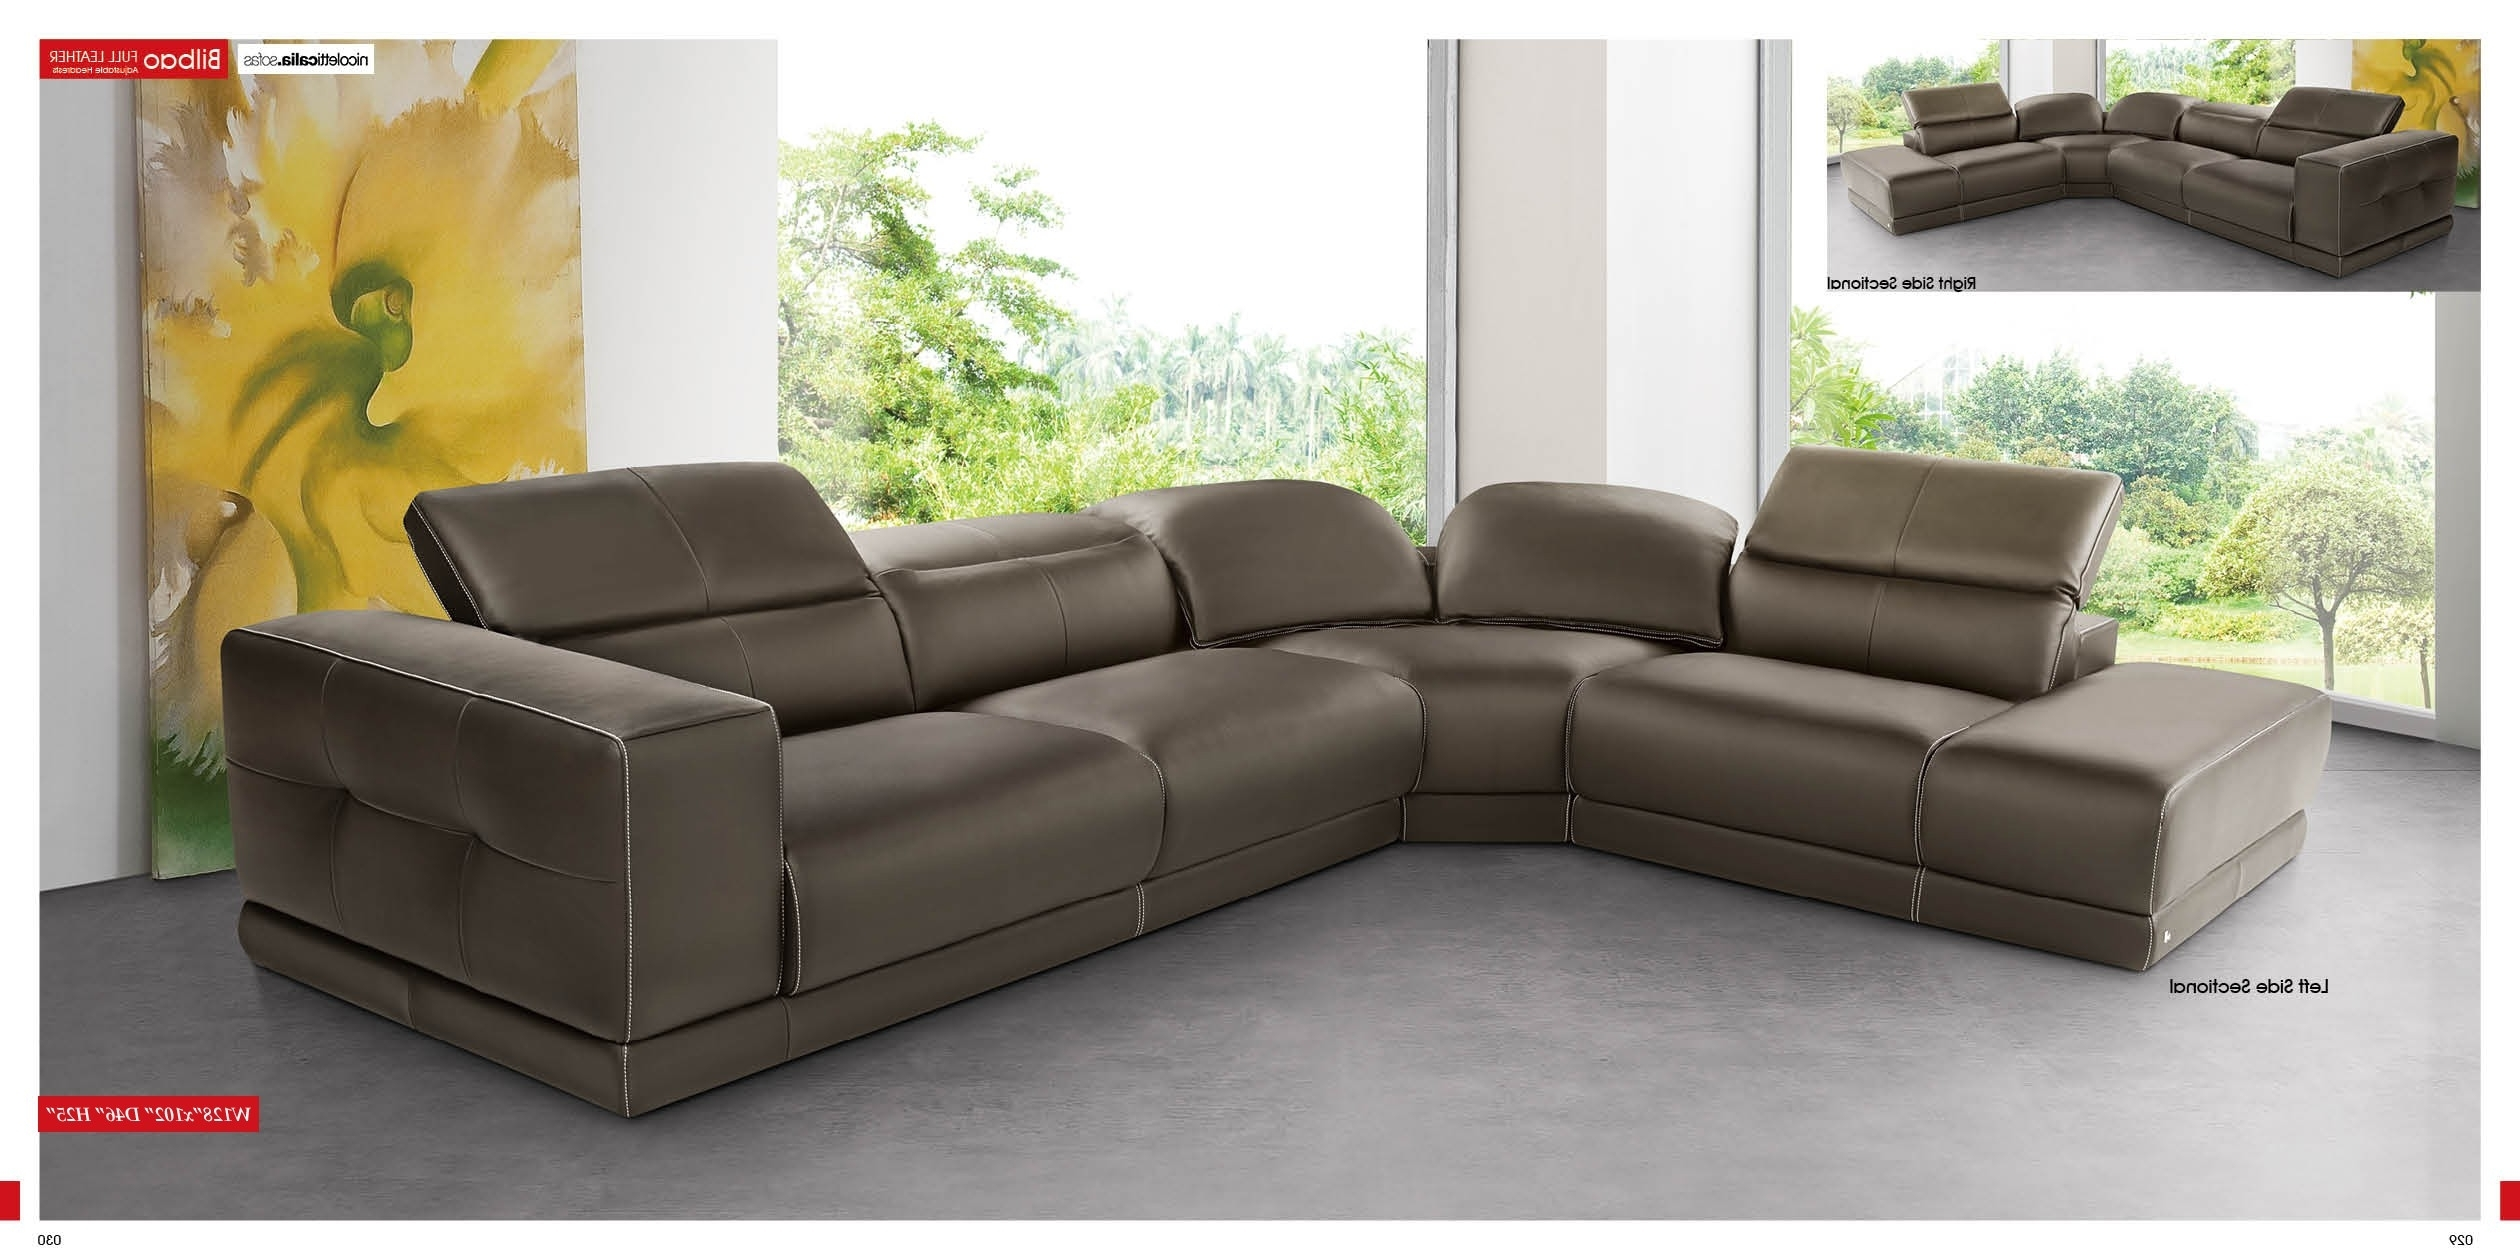 Furniture : Sectional Sofa 120 Sectional Couch Guelph Recliner 3 Regarding Favorite Guelph Sectional Sofas (View 6 of 15)